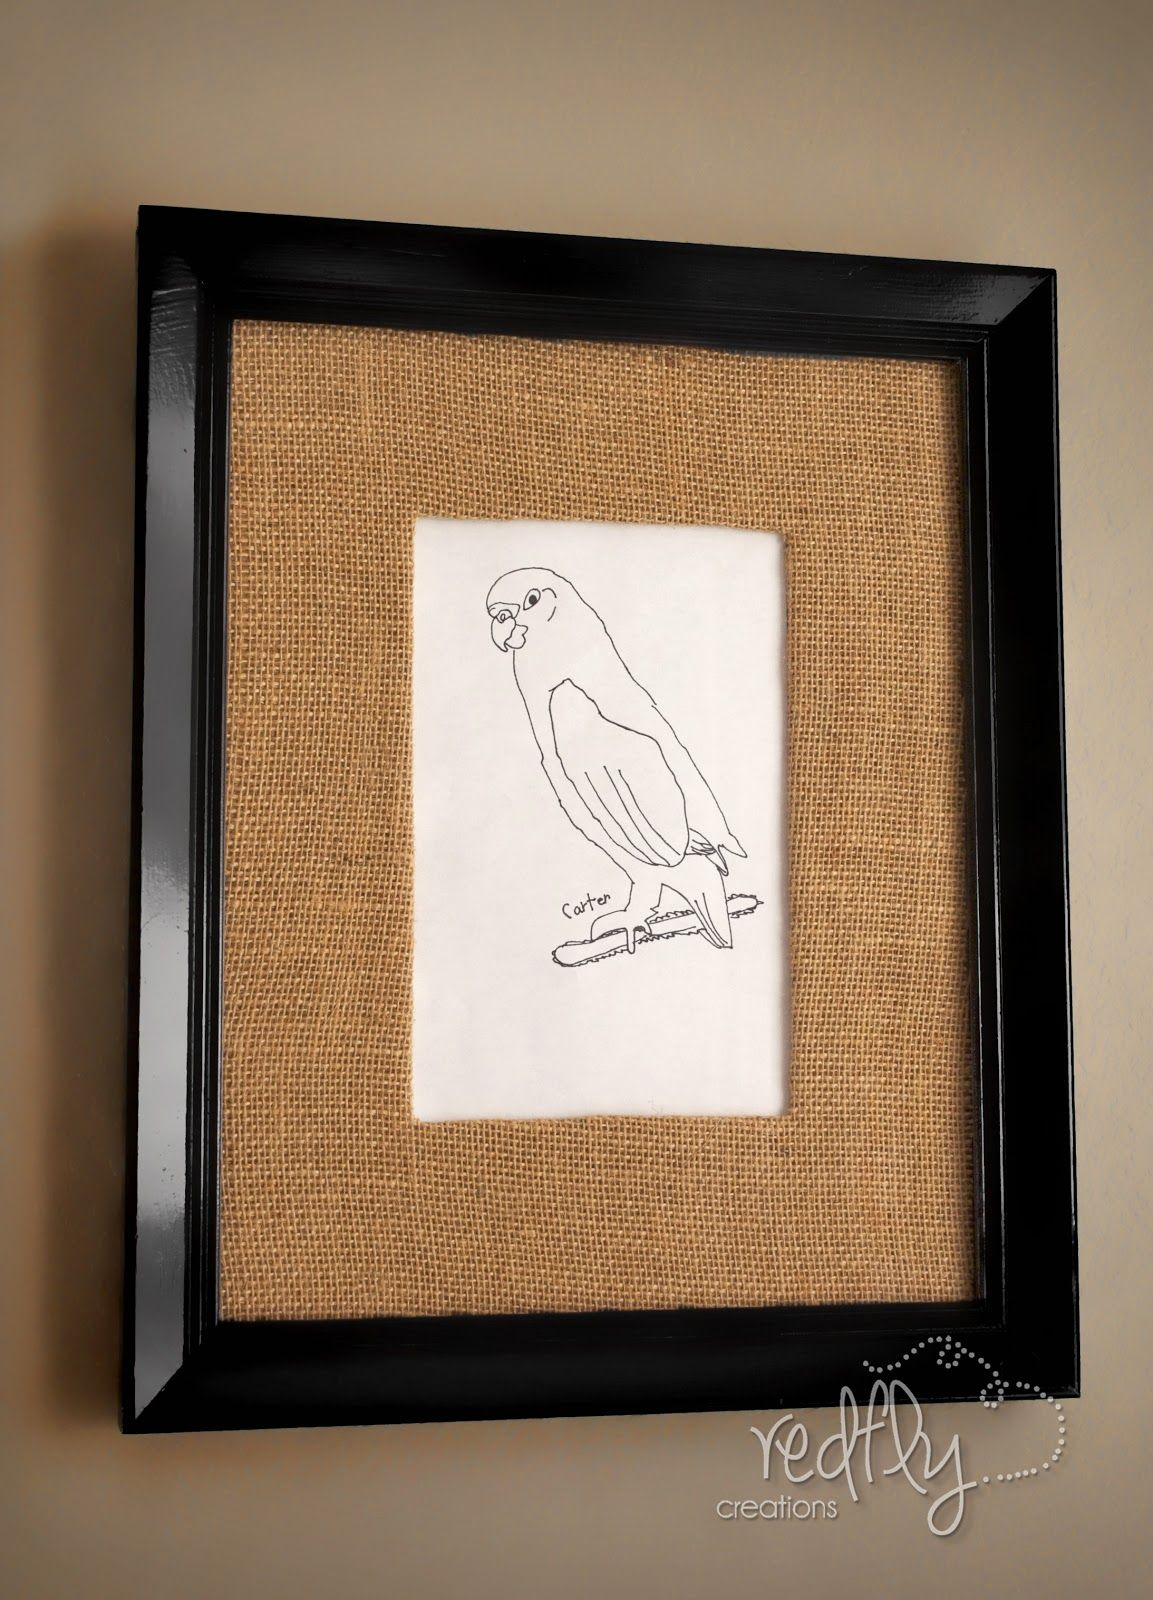 I was inspired by pottery barn and had to try it show off your diy burlap matted frame crafts my little carter loves the fact that his drawing is on our wall jeuxipadfo Image collections